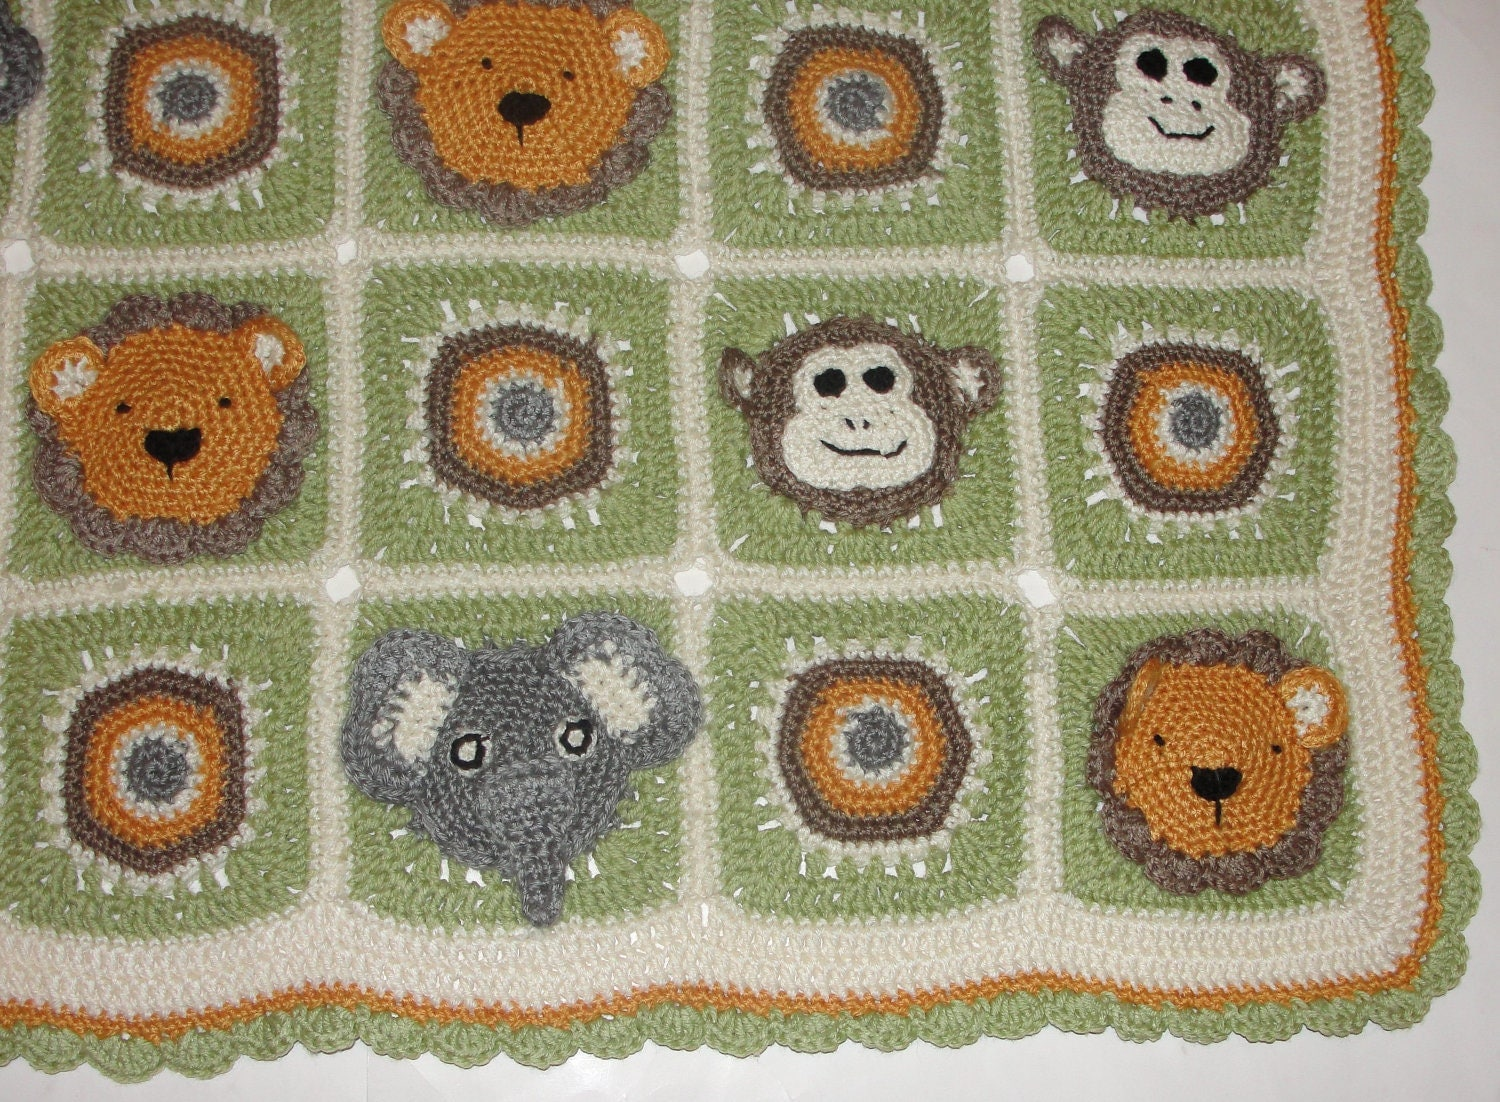 Crochet Patterns Jungle Animals : Animal Safari Crochet Afghan Blanket Monkey by dianelangan